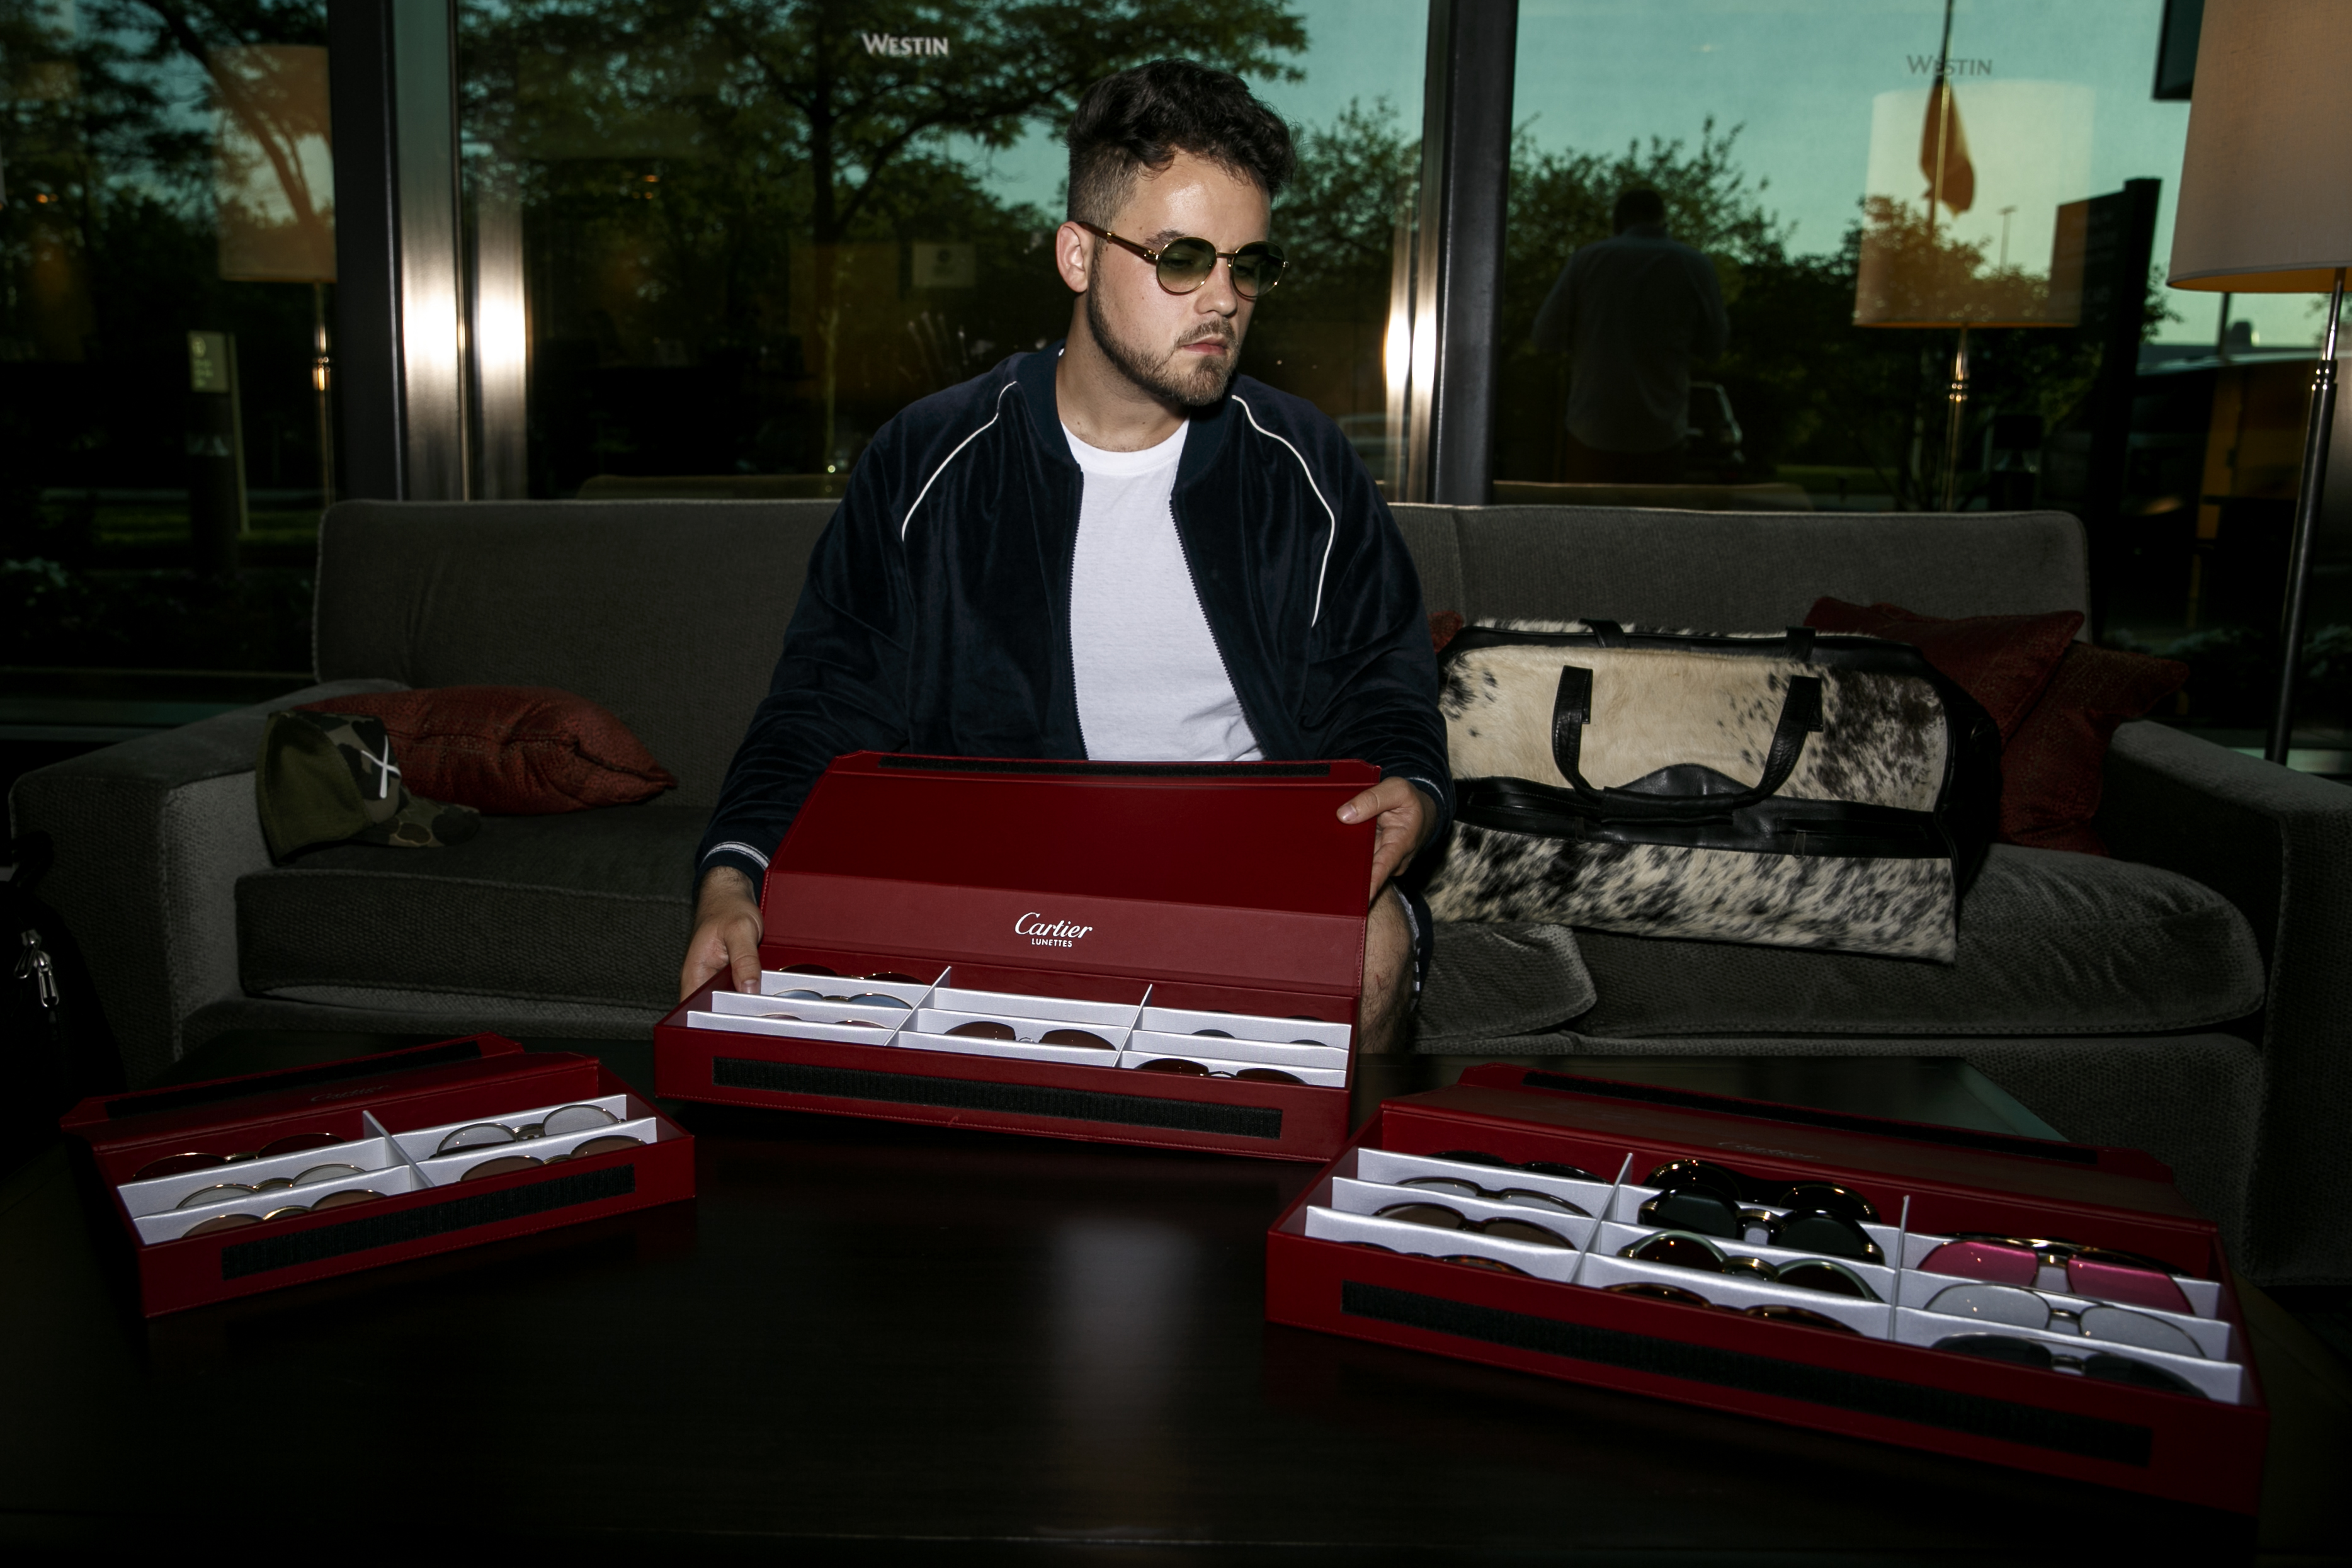 Spencer Shapiro supplies Cartier glasses for the Doughboyz.